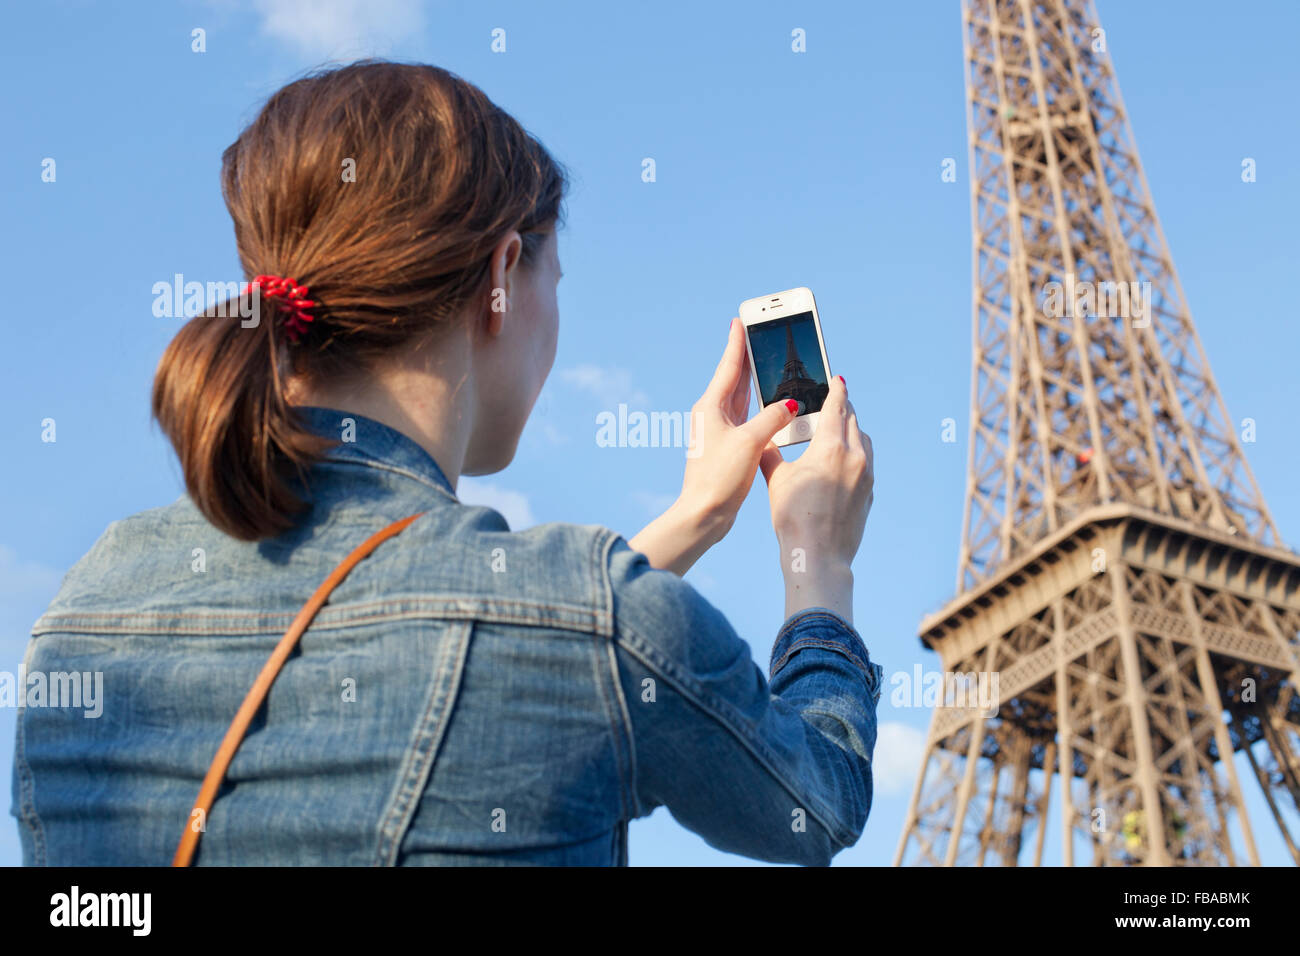 France, Ile-de-France, Paris, Rear view of woman taking picture of Eiffel Tower - Stock Image